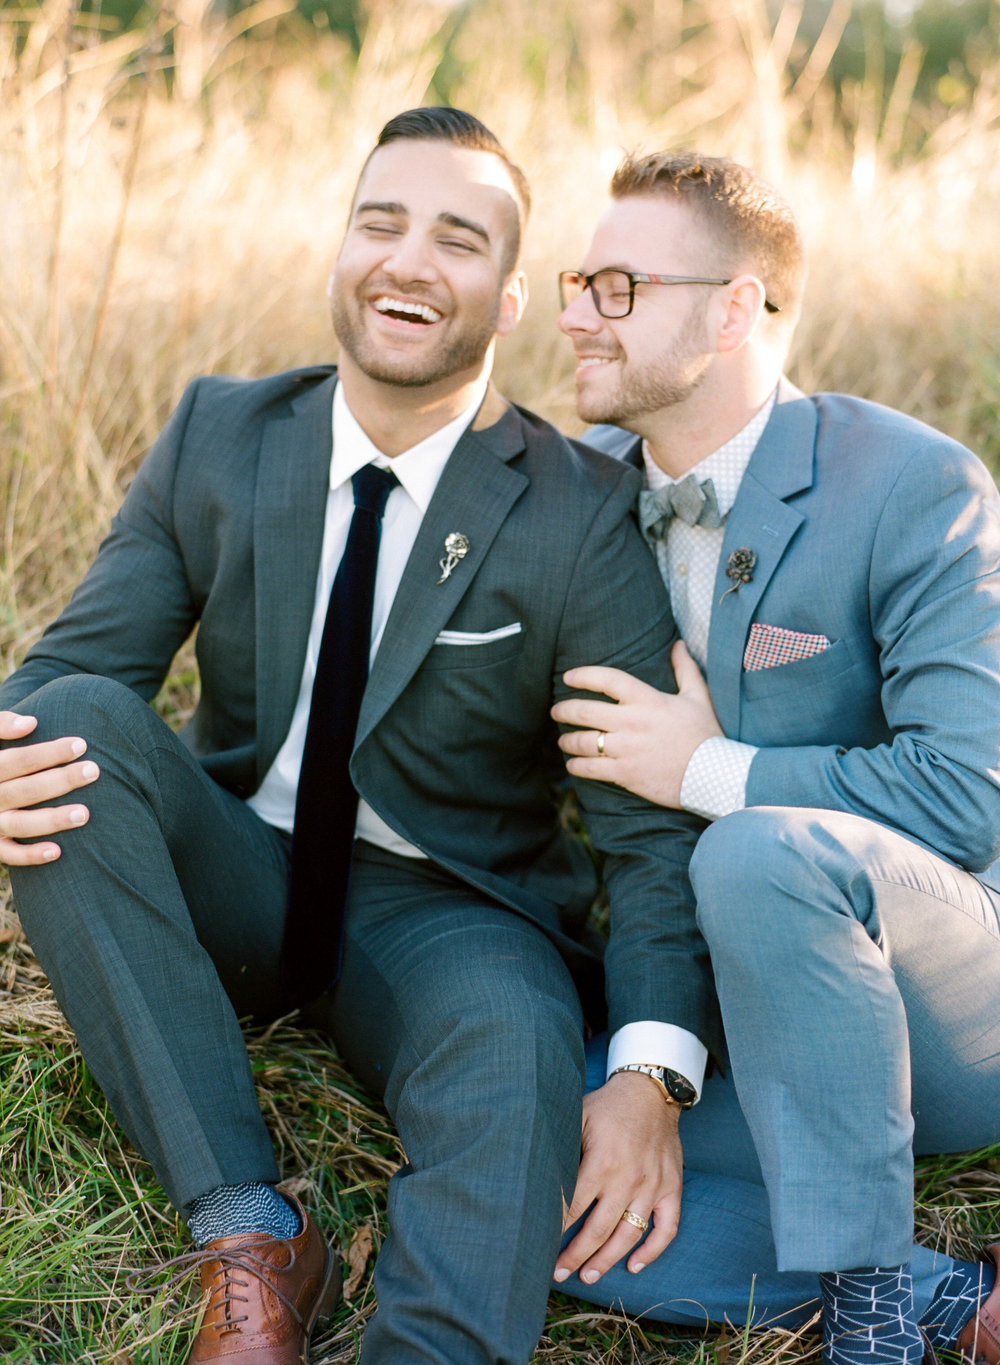 Houston-Texas-Same-Sex-LGBT-Wedding-Photographer-Burnett's-Board-Feature-Dana-Fernandez-Photography-Love-Wins-Film-14.jpg